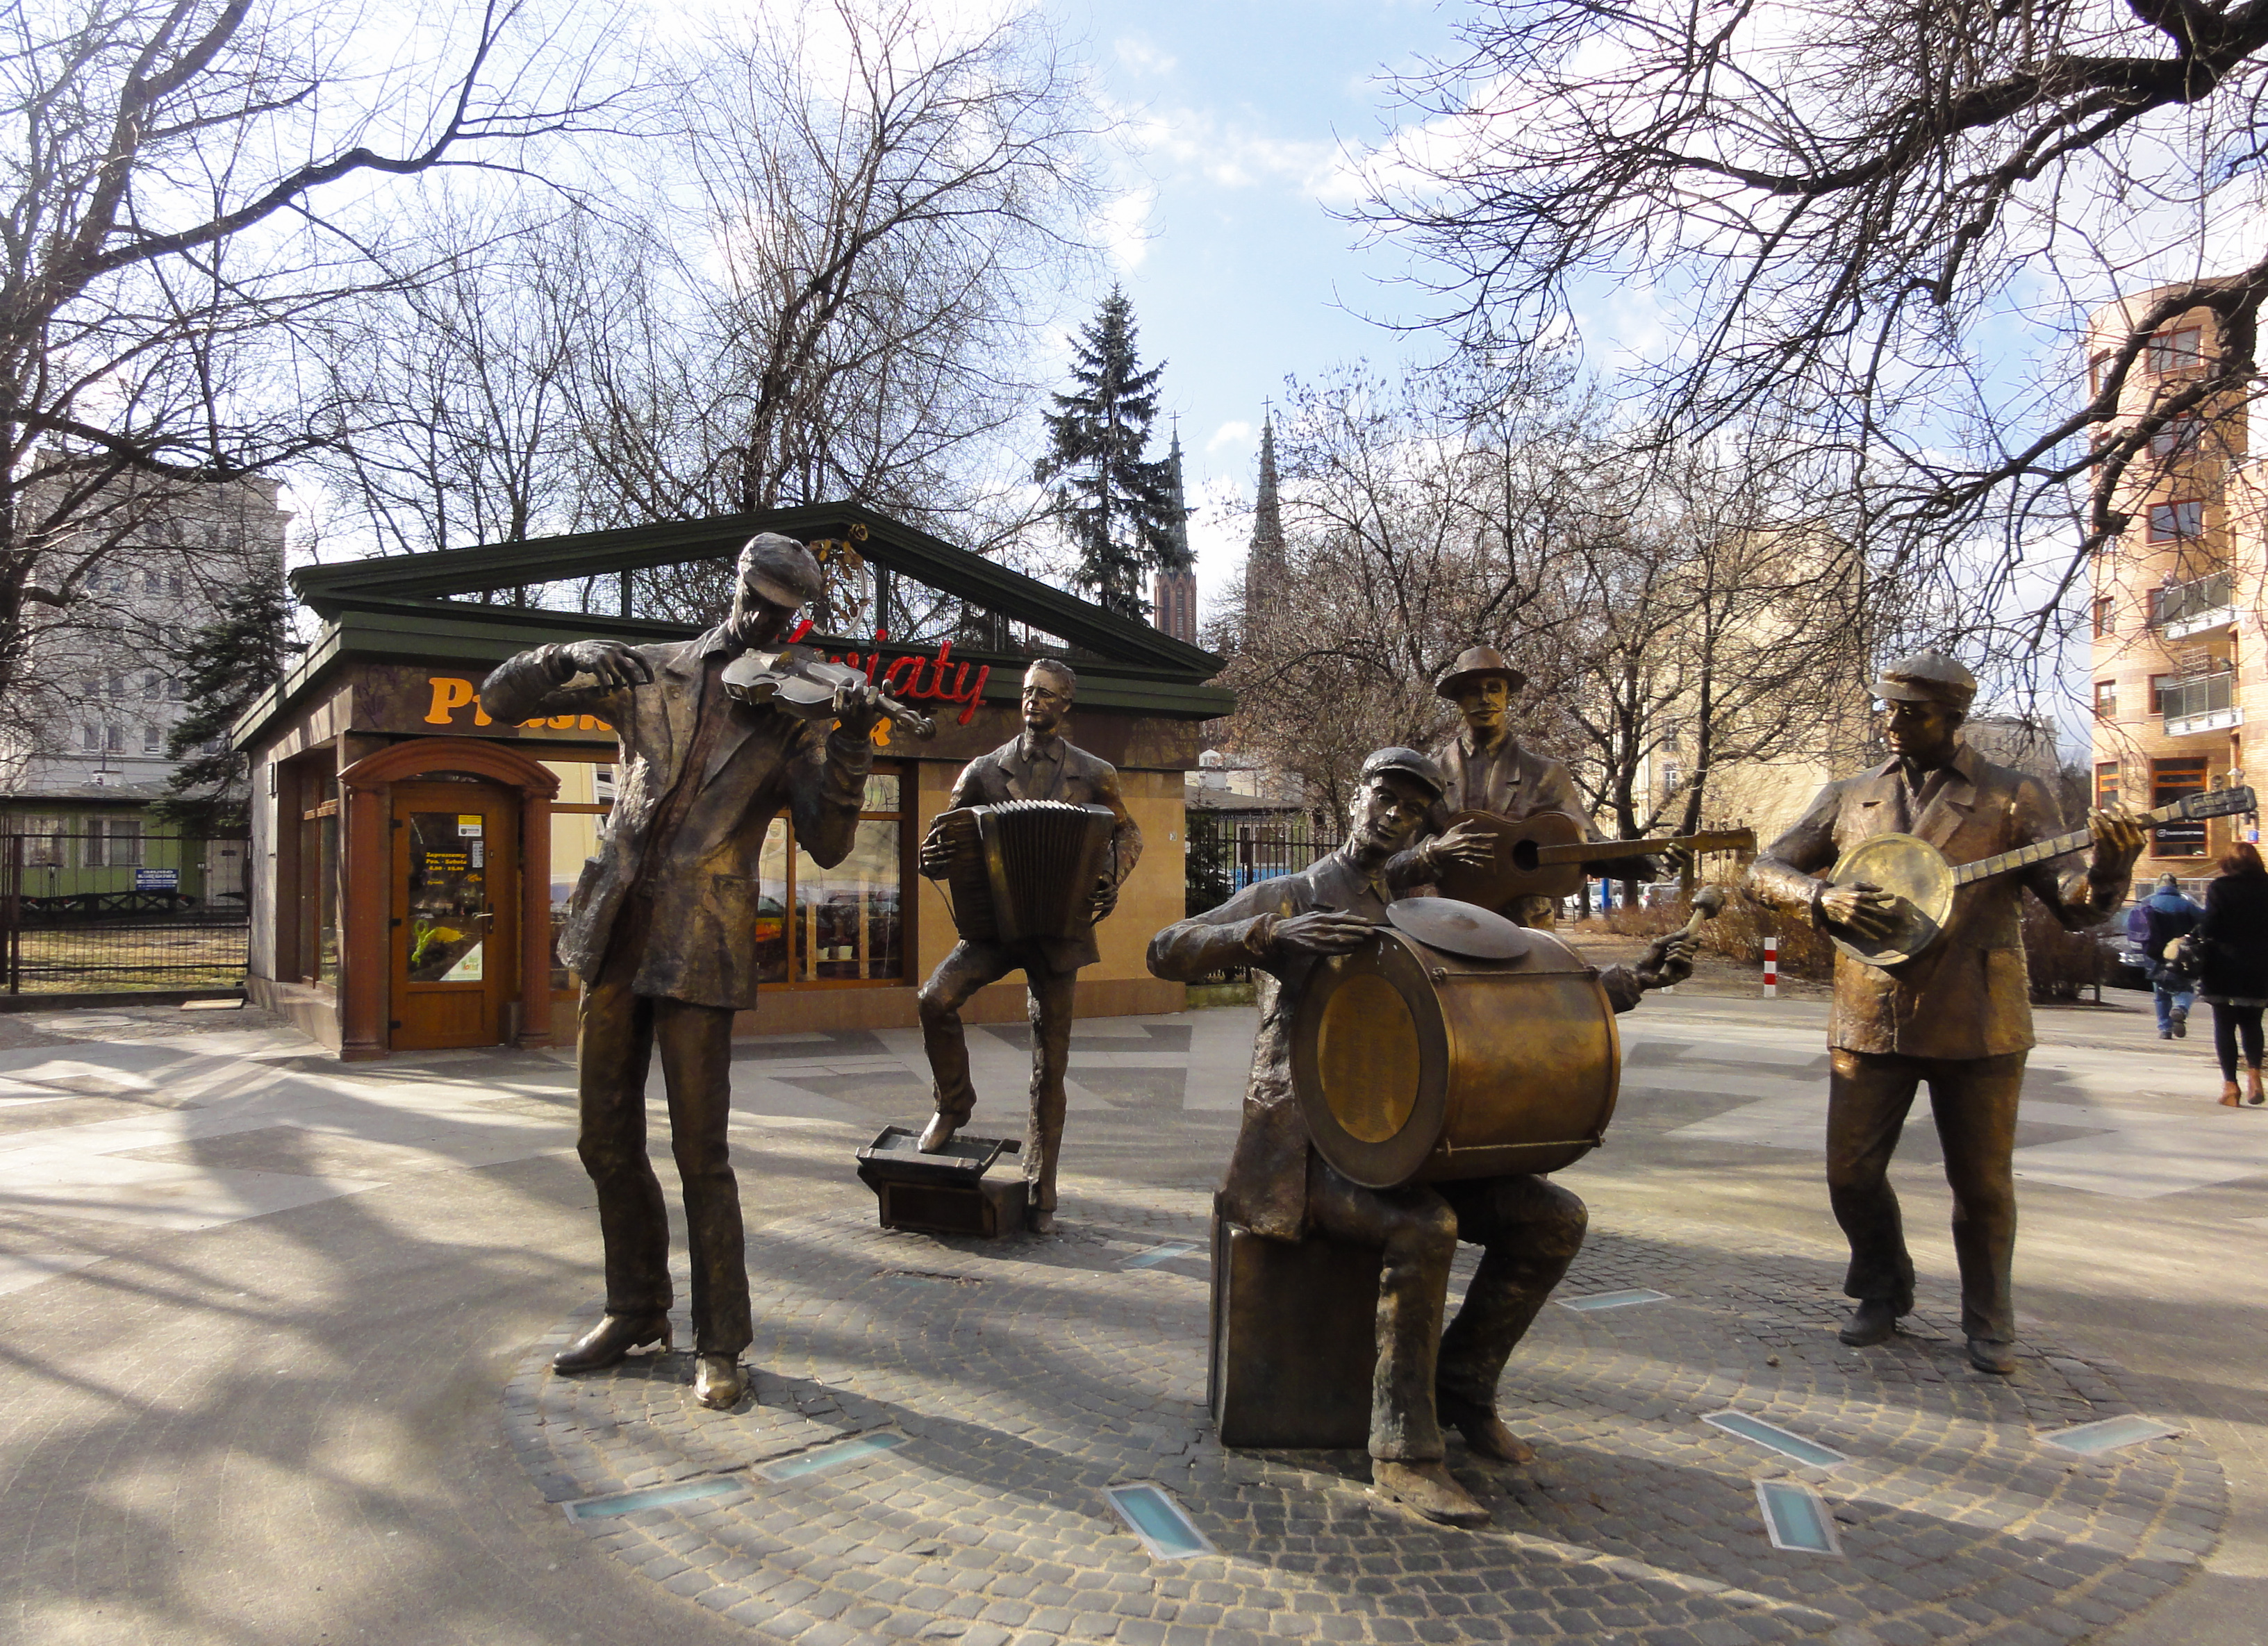 File:Unusual lifesize group sculpture of street musicians ...